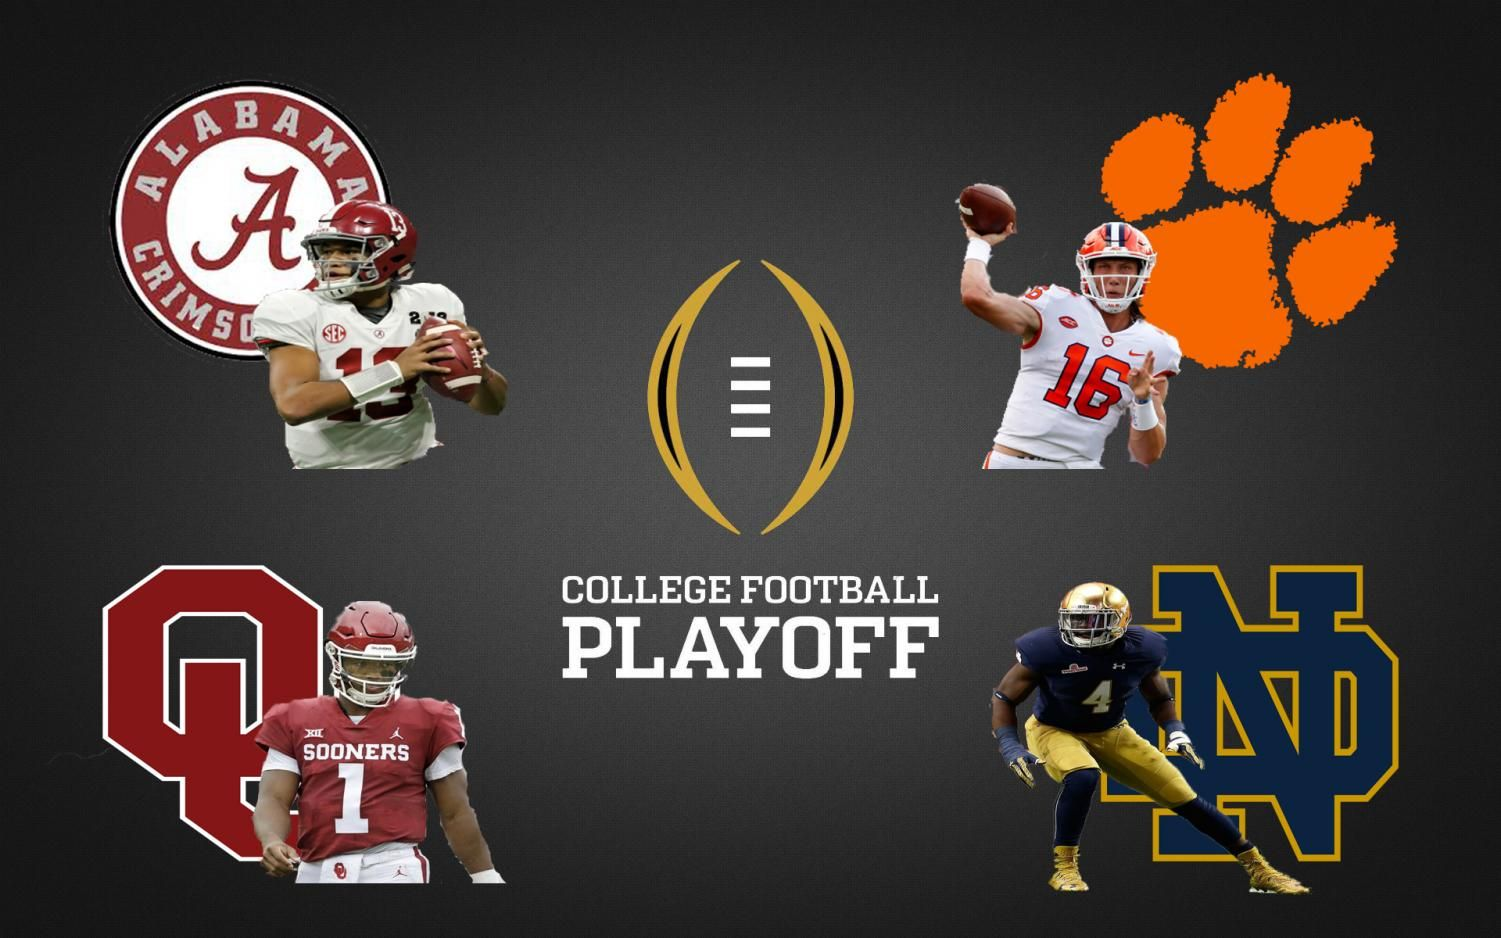 College Football Preview Predictions Bama Vs Ou Clemson Vs Nd More College Football College Football Playoff Football